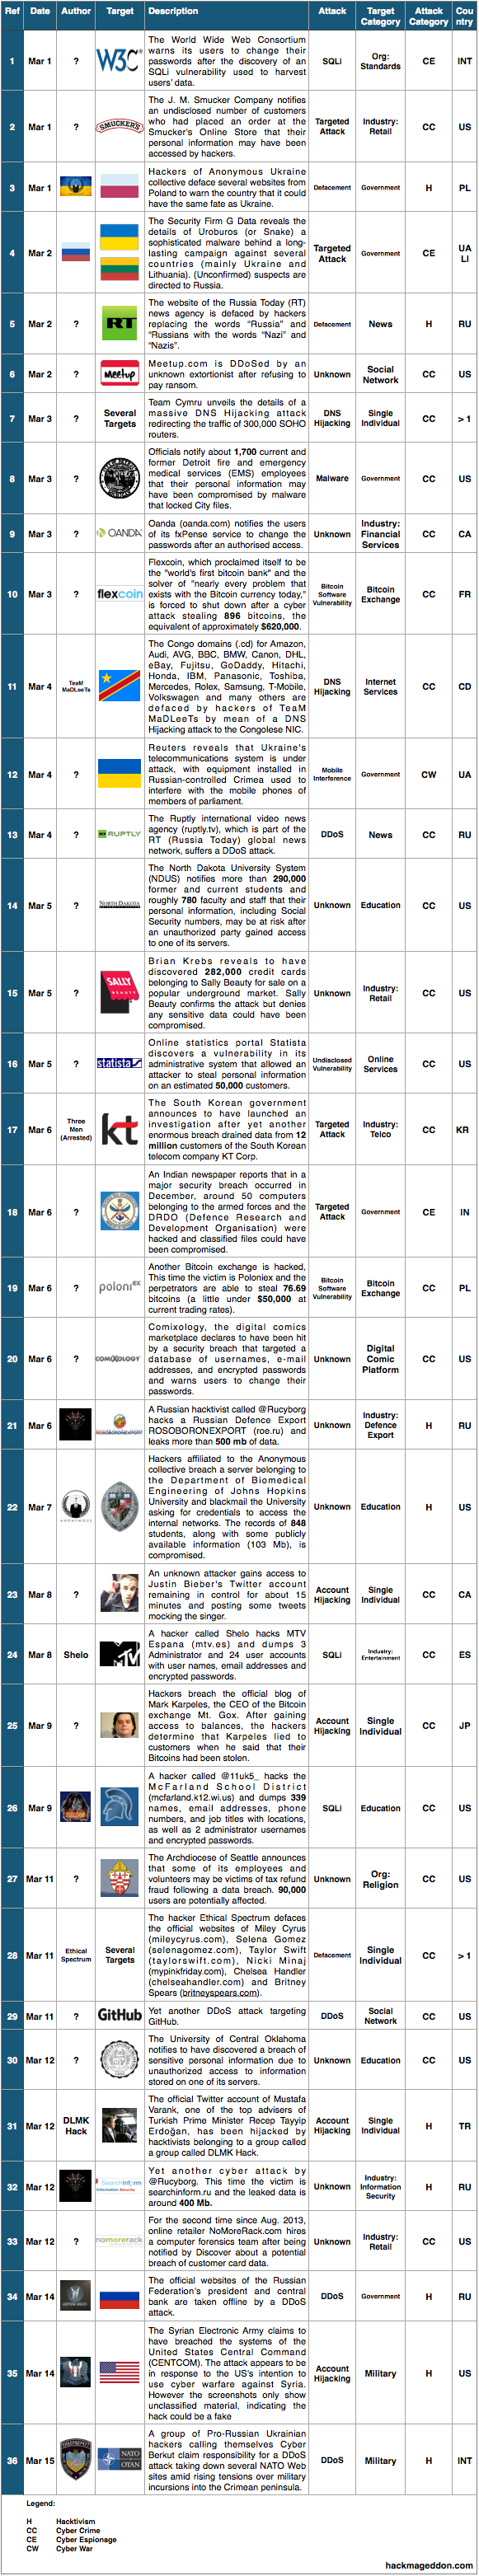 1-15 Mar 2014 Cyber Attacks Timeline